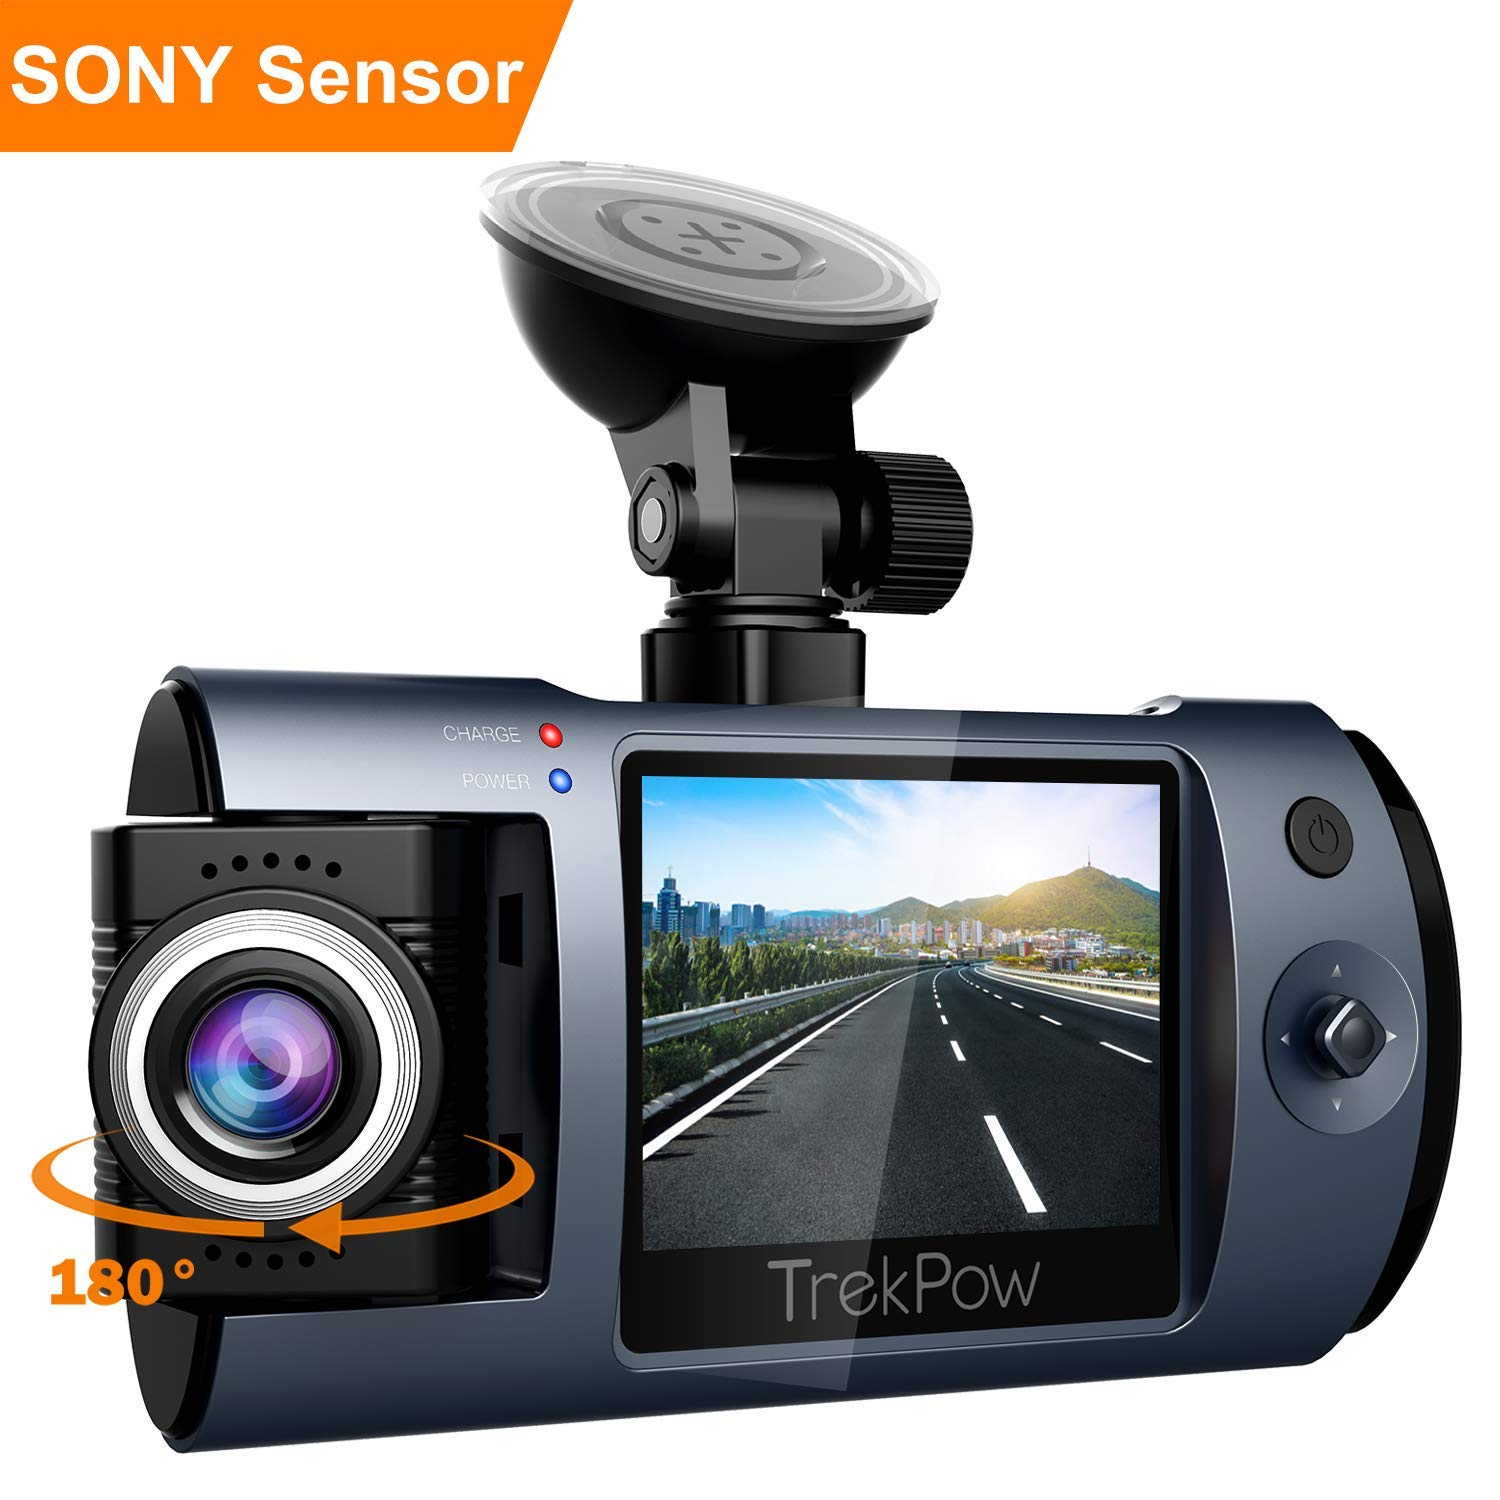 ABOX HD Dash Cam 1080P Full HD Car Camera with Sony Sensor for £25.99